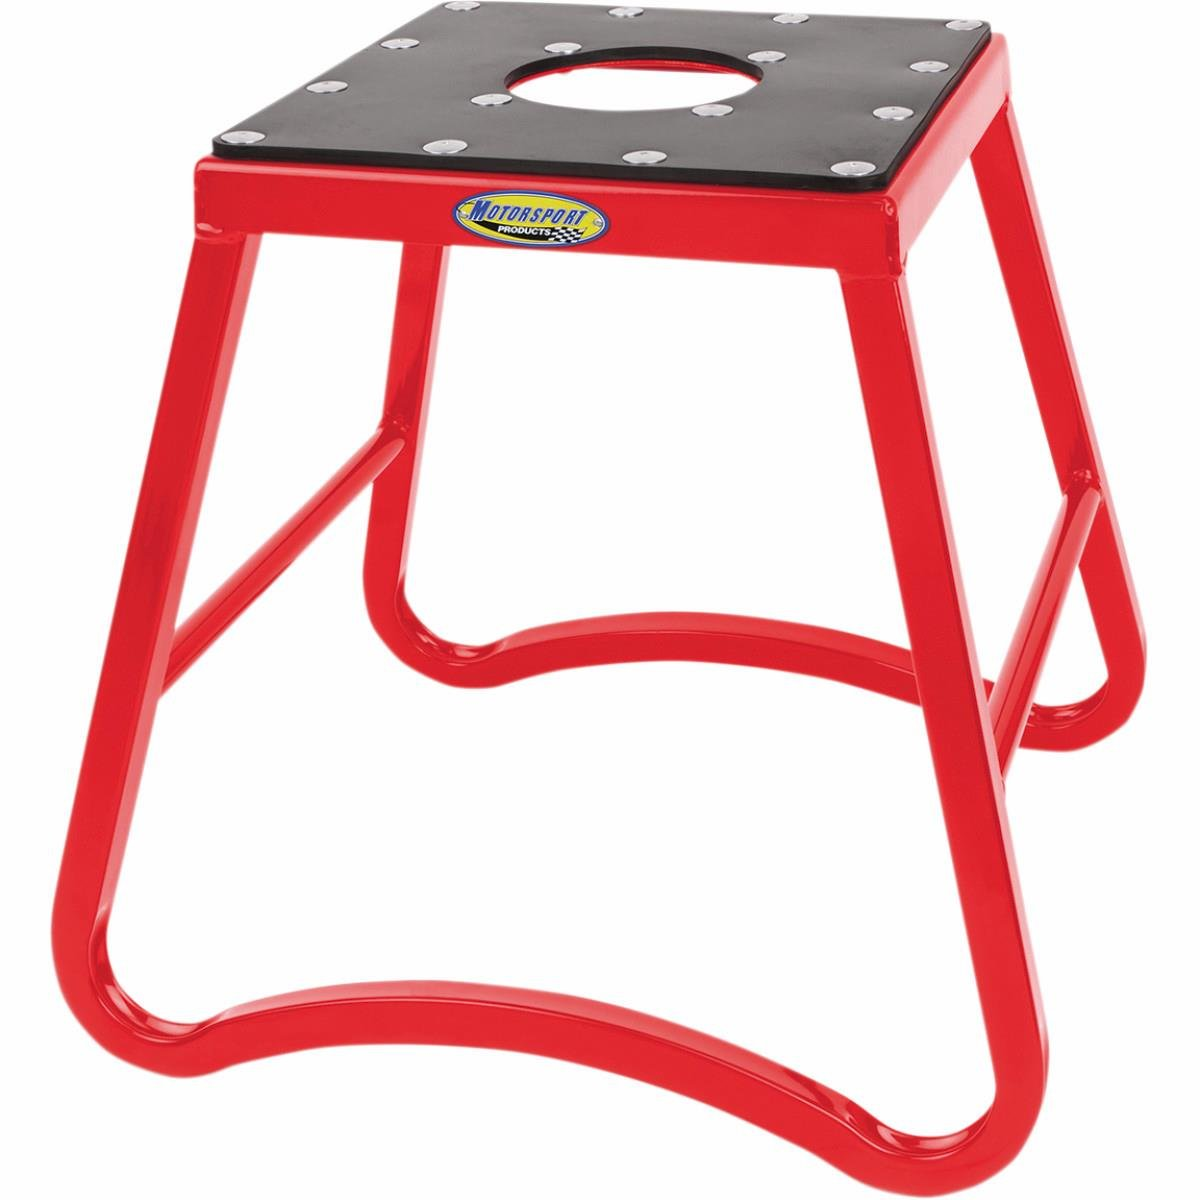 Motorsport Products SX1 Mini Stand Red 964103